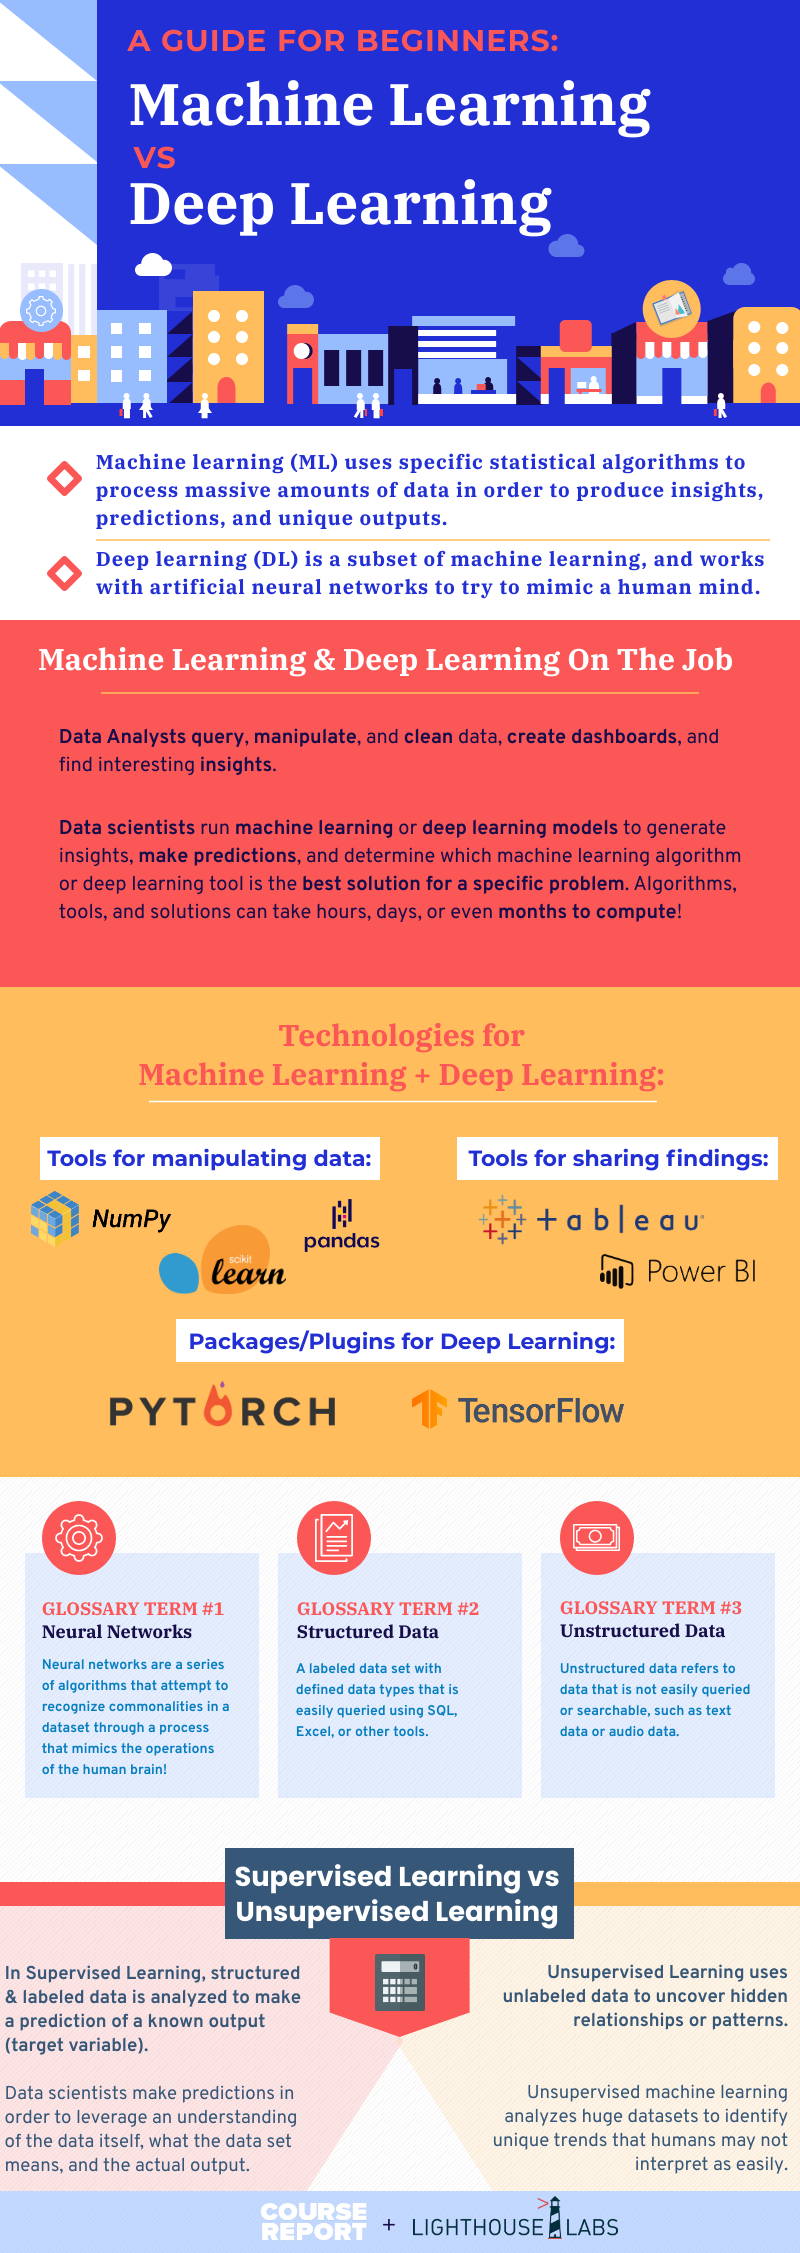 Machine Learning vs Deep Learning - Guide for Beginners infographic